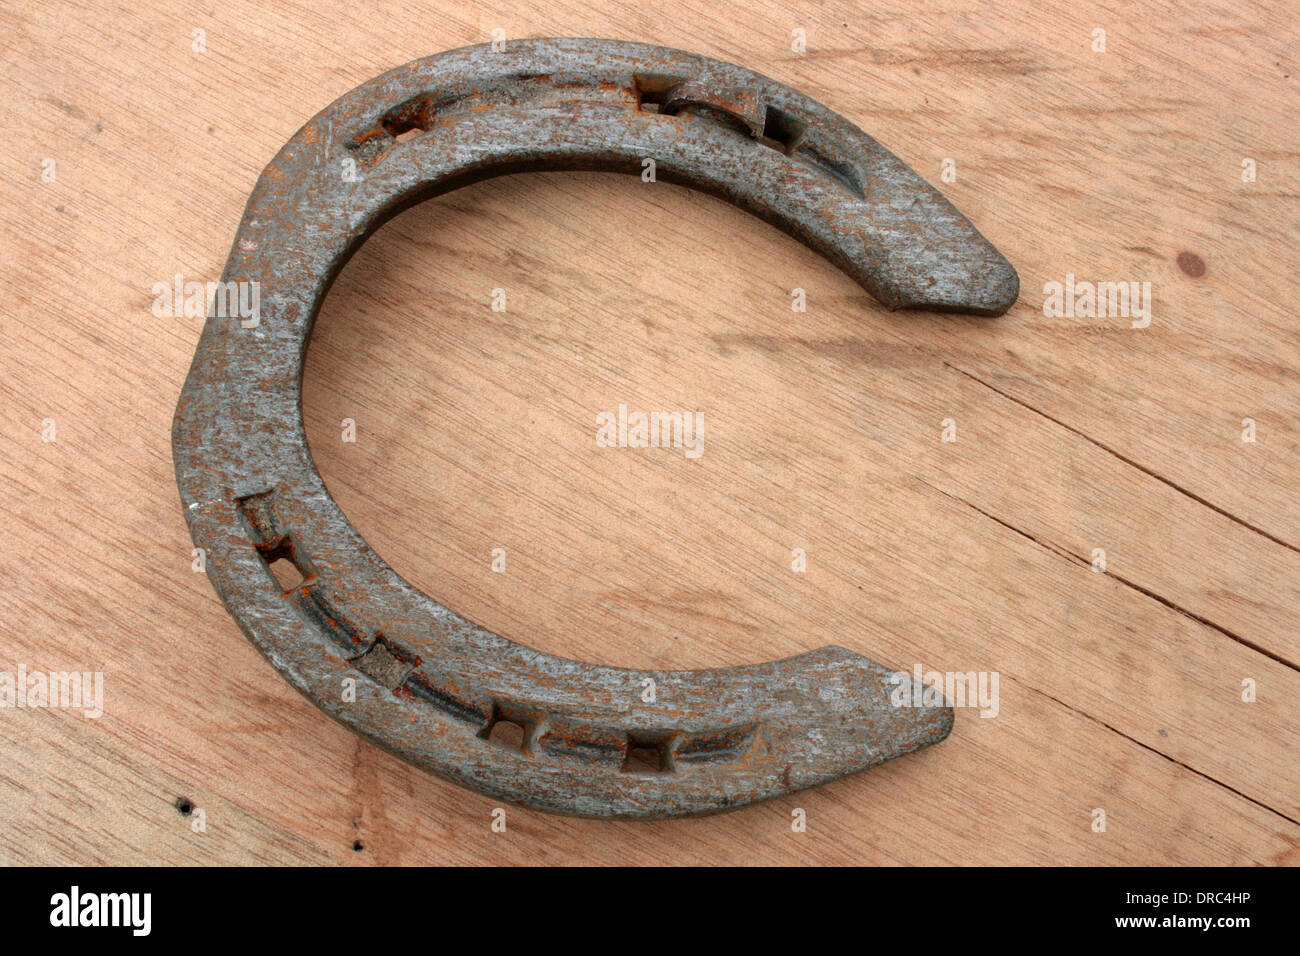 Horseshoe Shape Stock Photos & Horseshoe Shape Stock Images